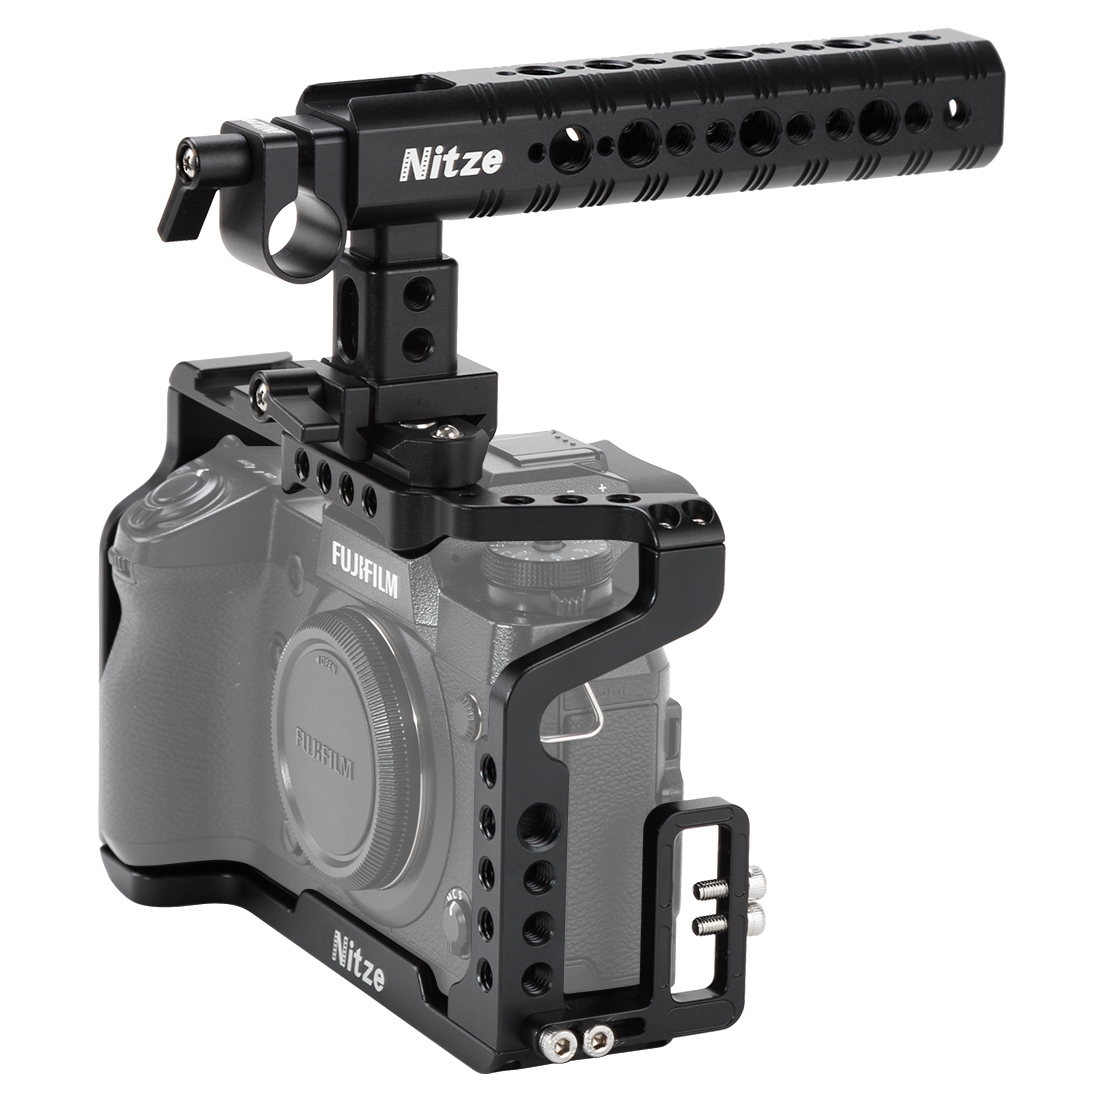 NITZE X-H1 Camera Cage for Fujifilm X-H1 with Top Handle